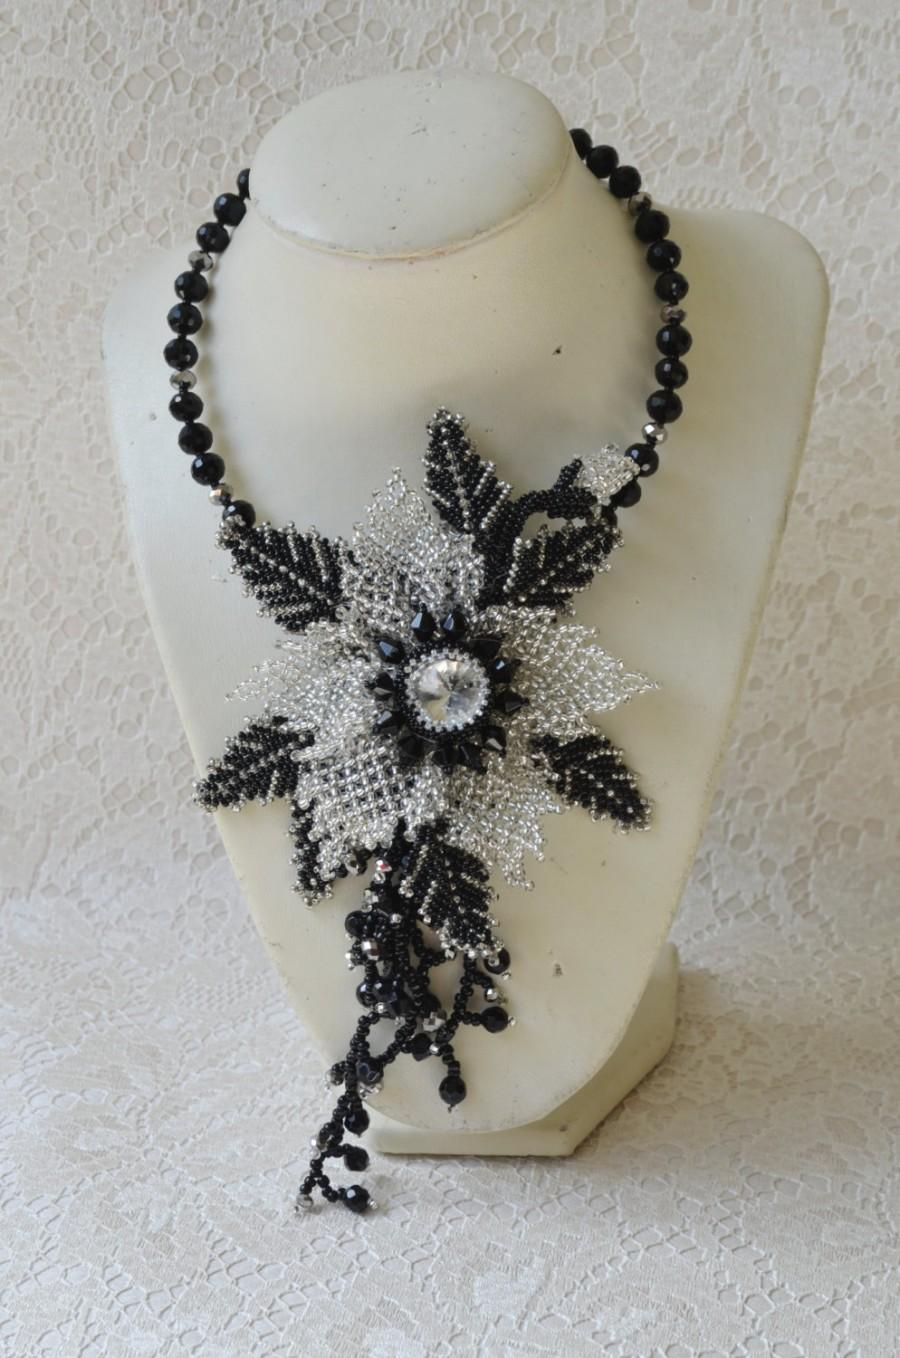 Mariage - Black and Silver Jewelry Statement Flower Choker Transformer, Beaded Choker and Christmas Star Pendant Brooch, Seed Bead Holiday Necklace